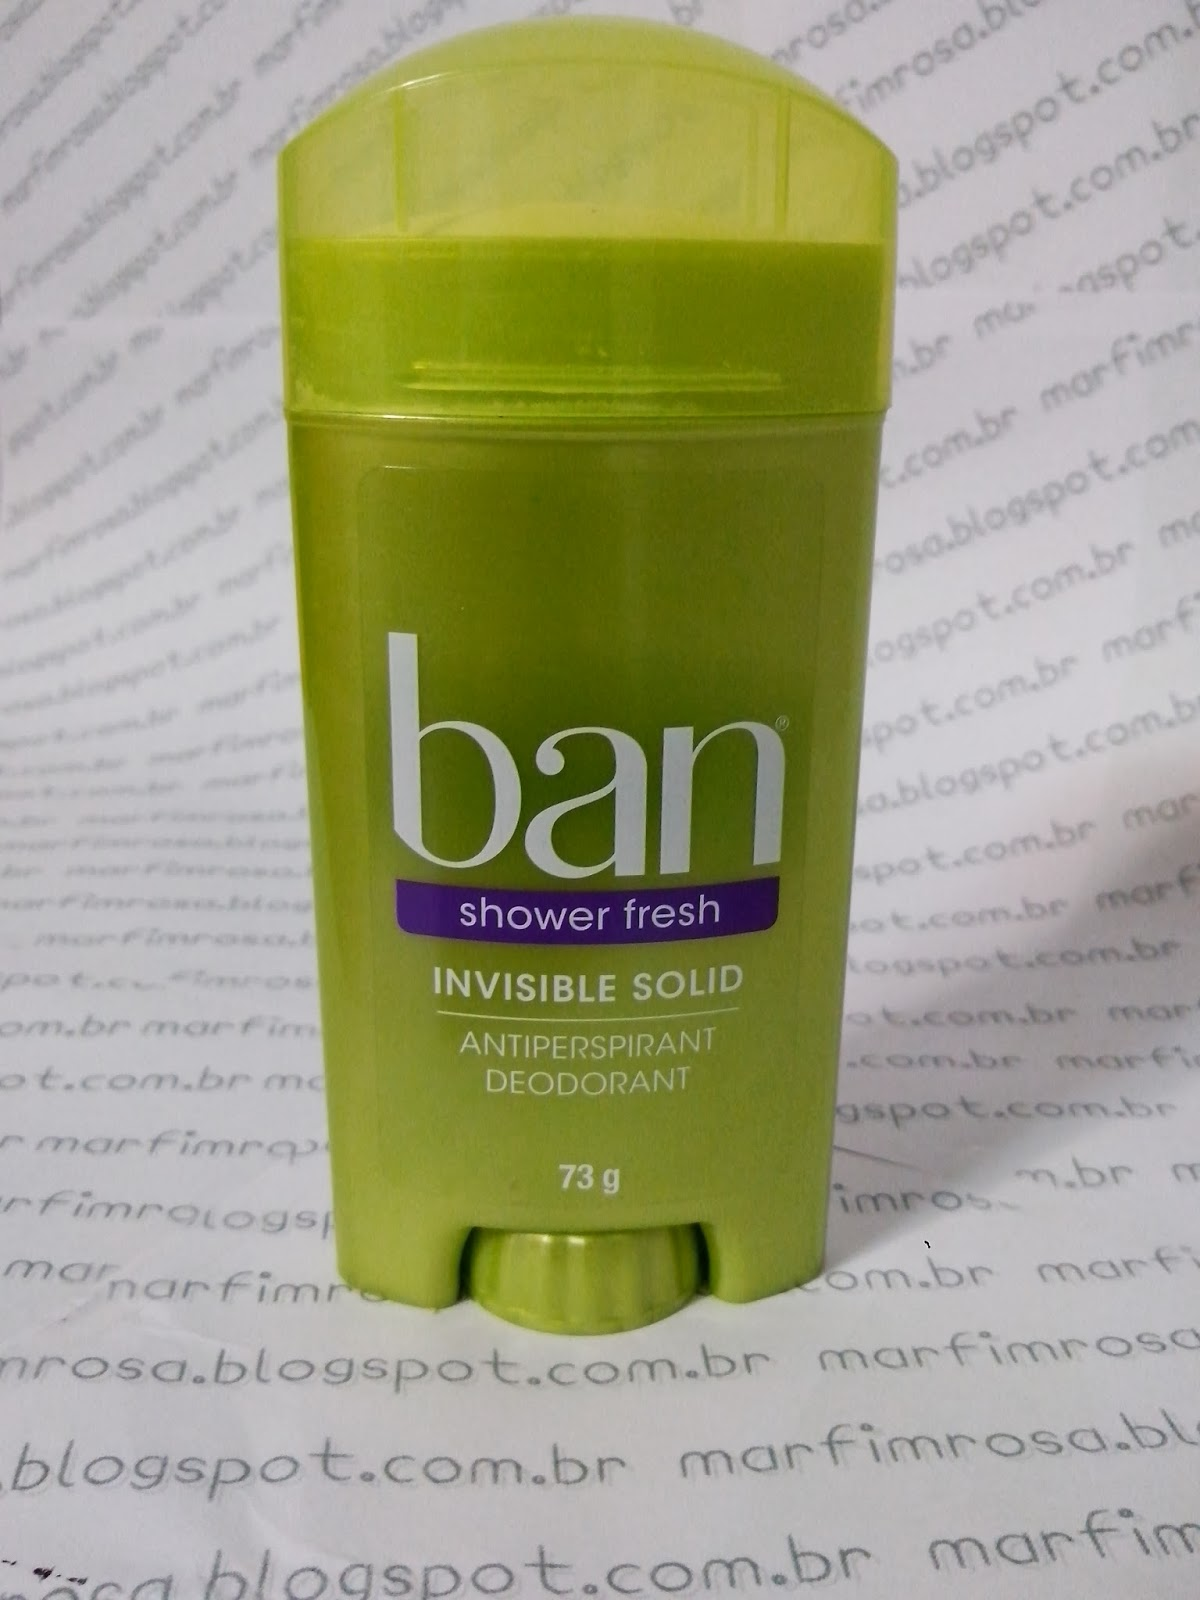 Desodorante Ban Shower Fresh resenha